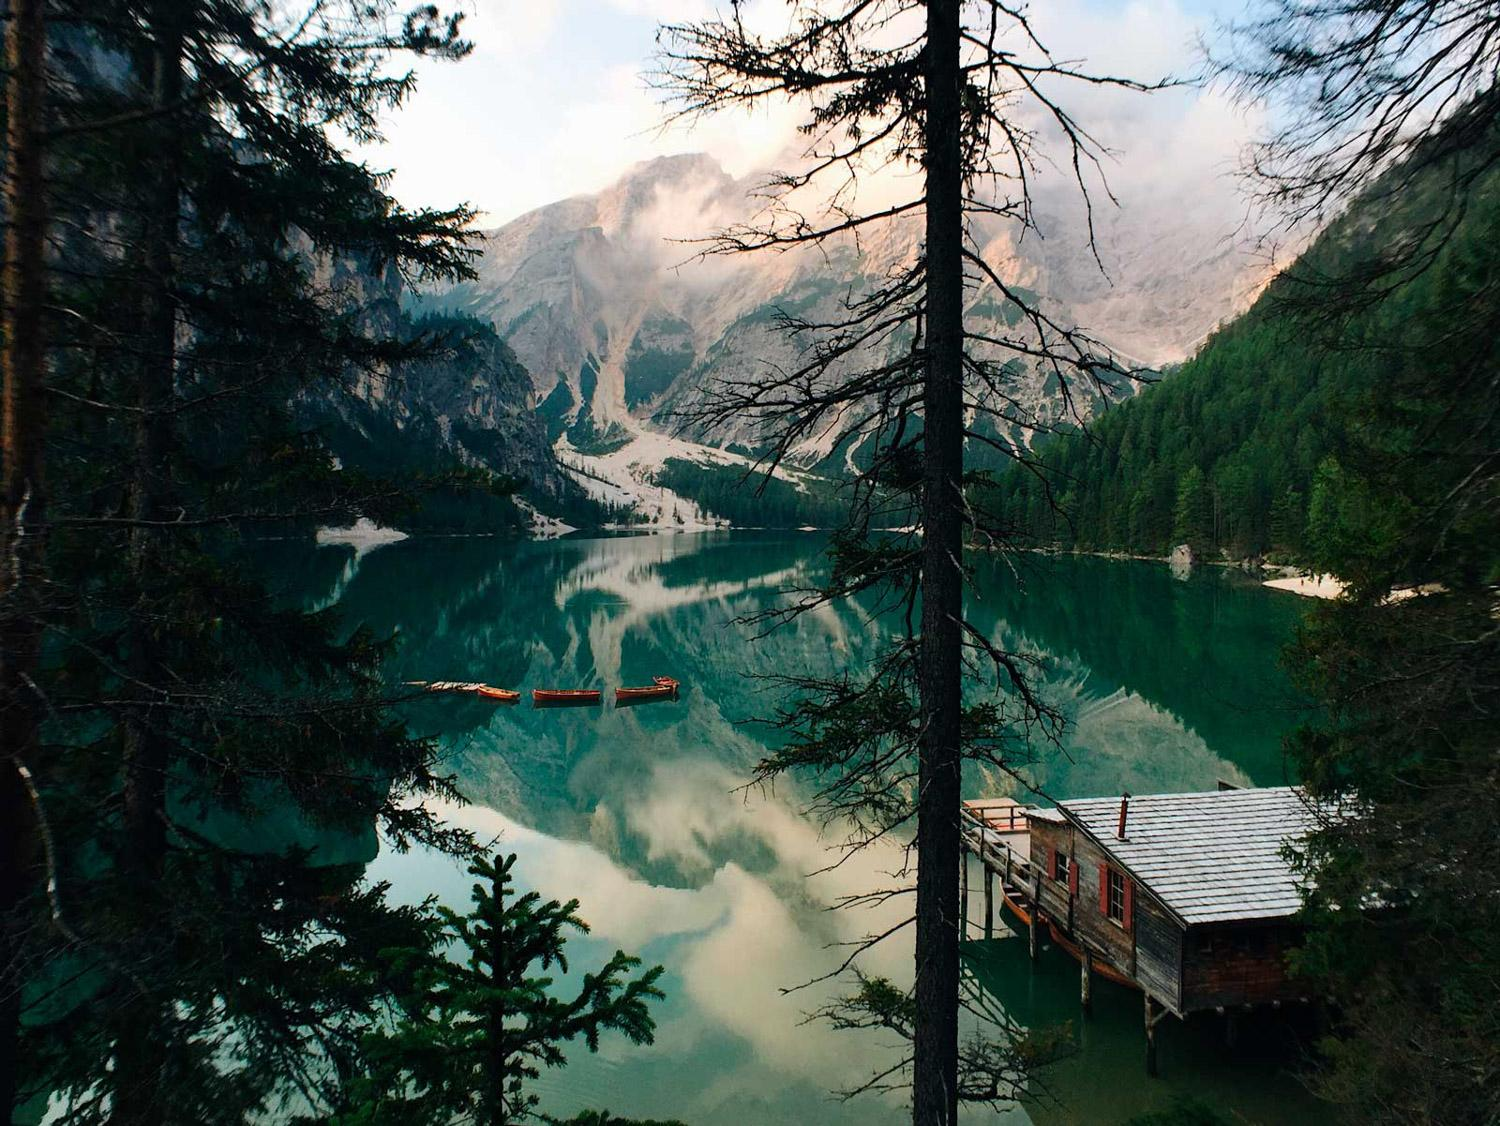 The amazing Lago Di Braies, shot with the Pro Portrait Tele G4 lens!